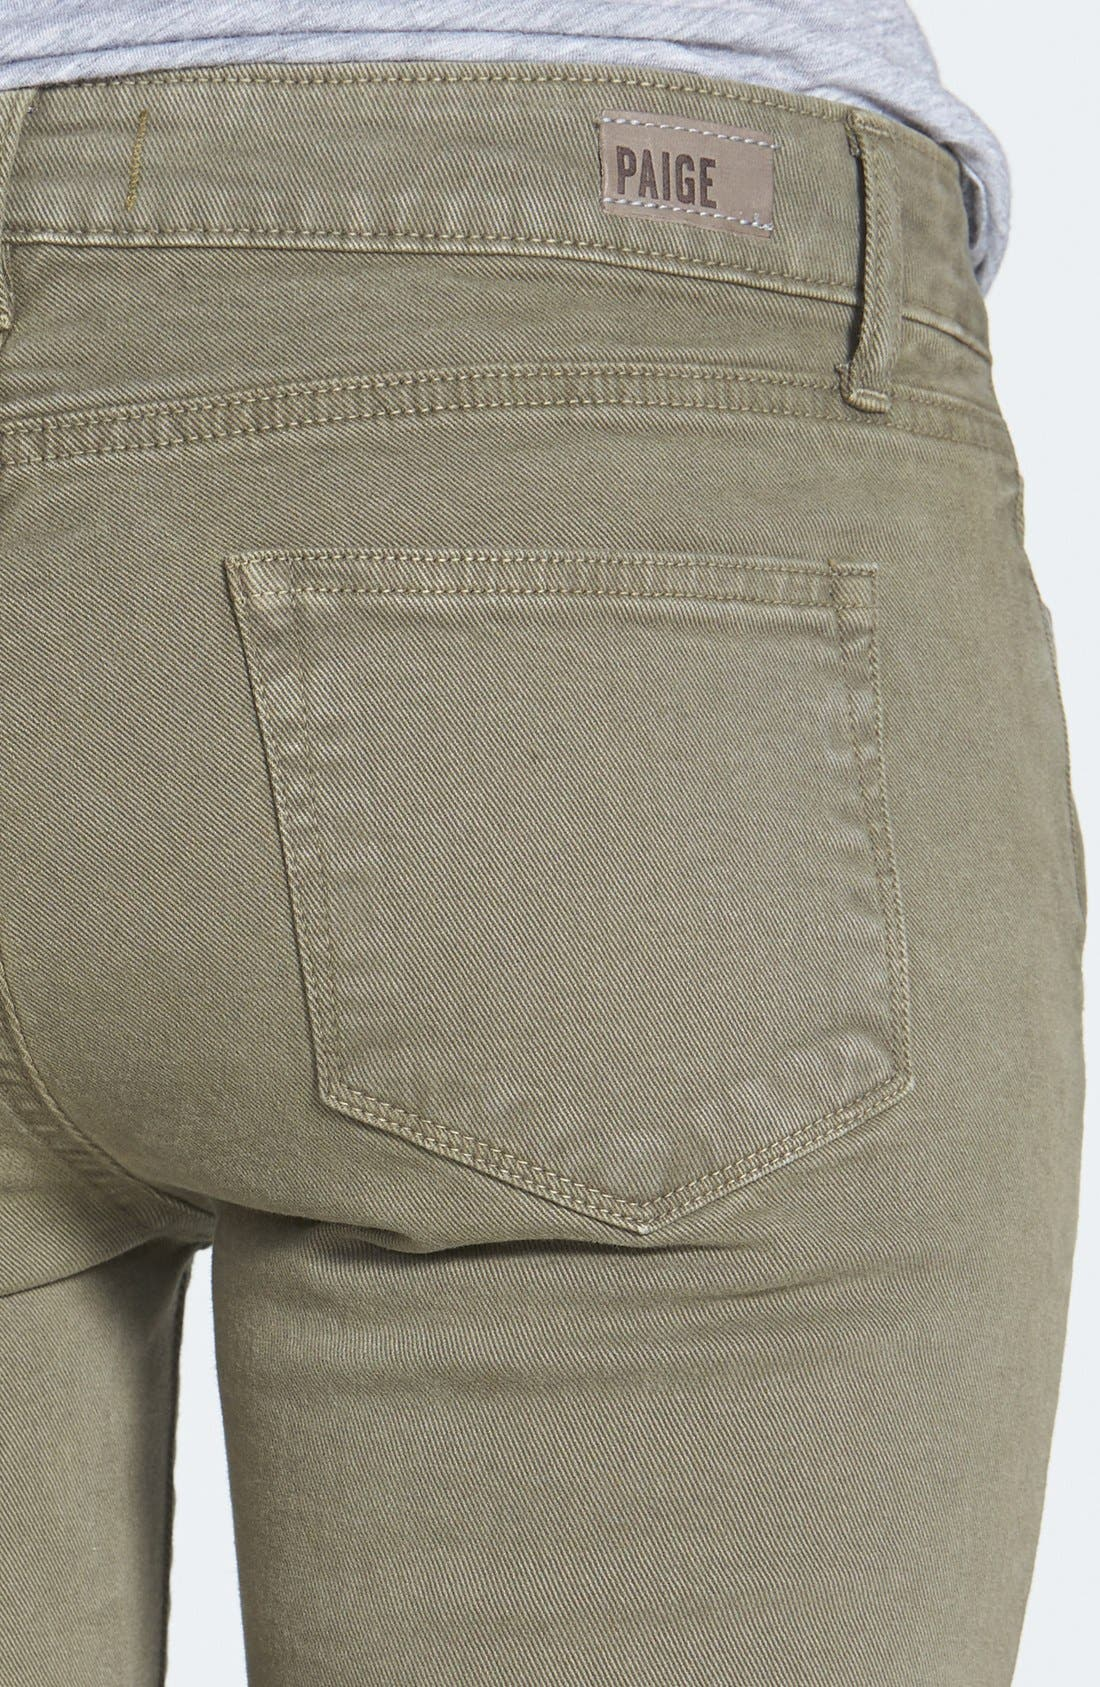 Alternate Image 3  - Paige Denim 'Jane' Zip Detail Ultra Skinny Ankle Jeans (Fatigue Green)